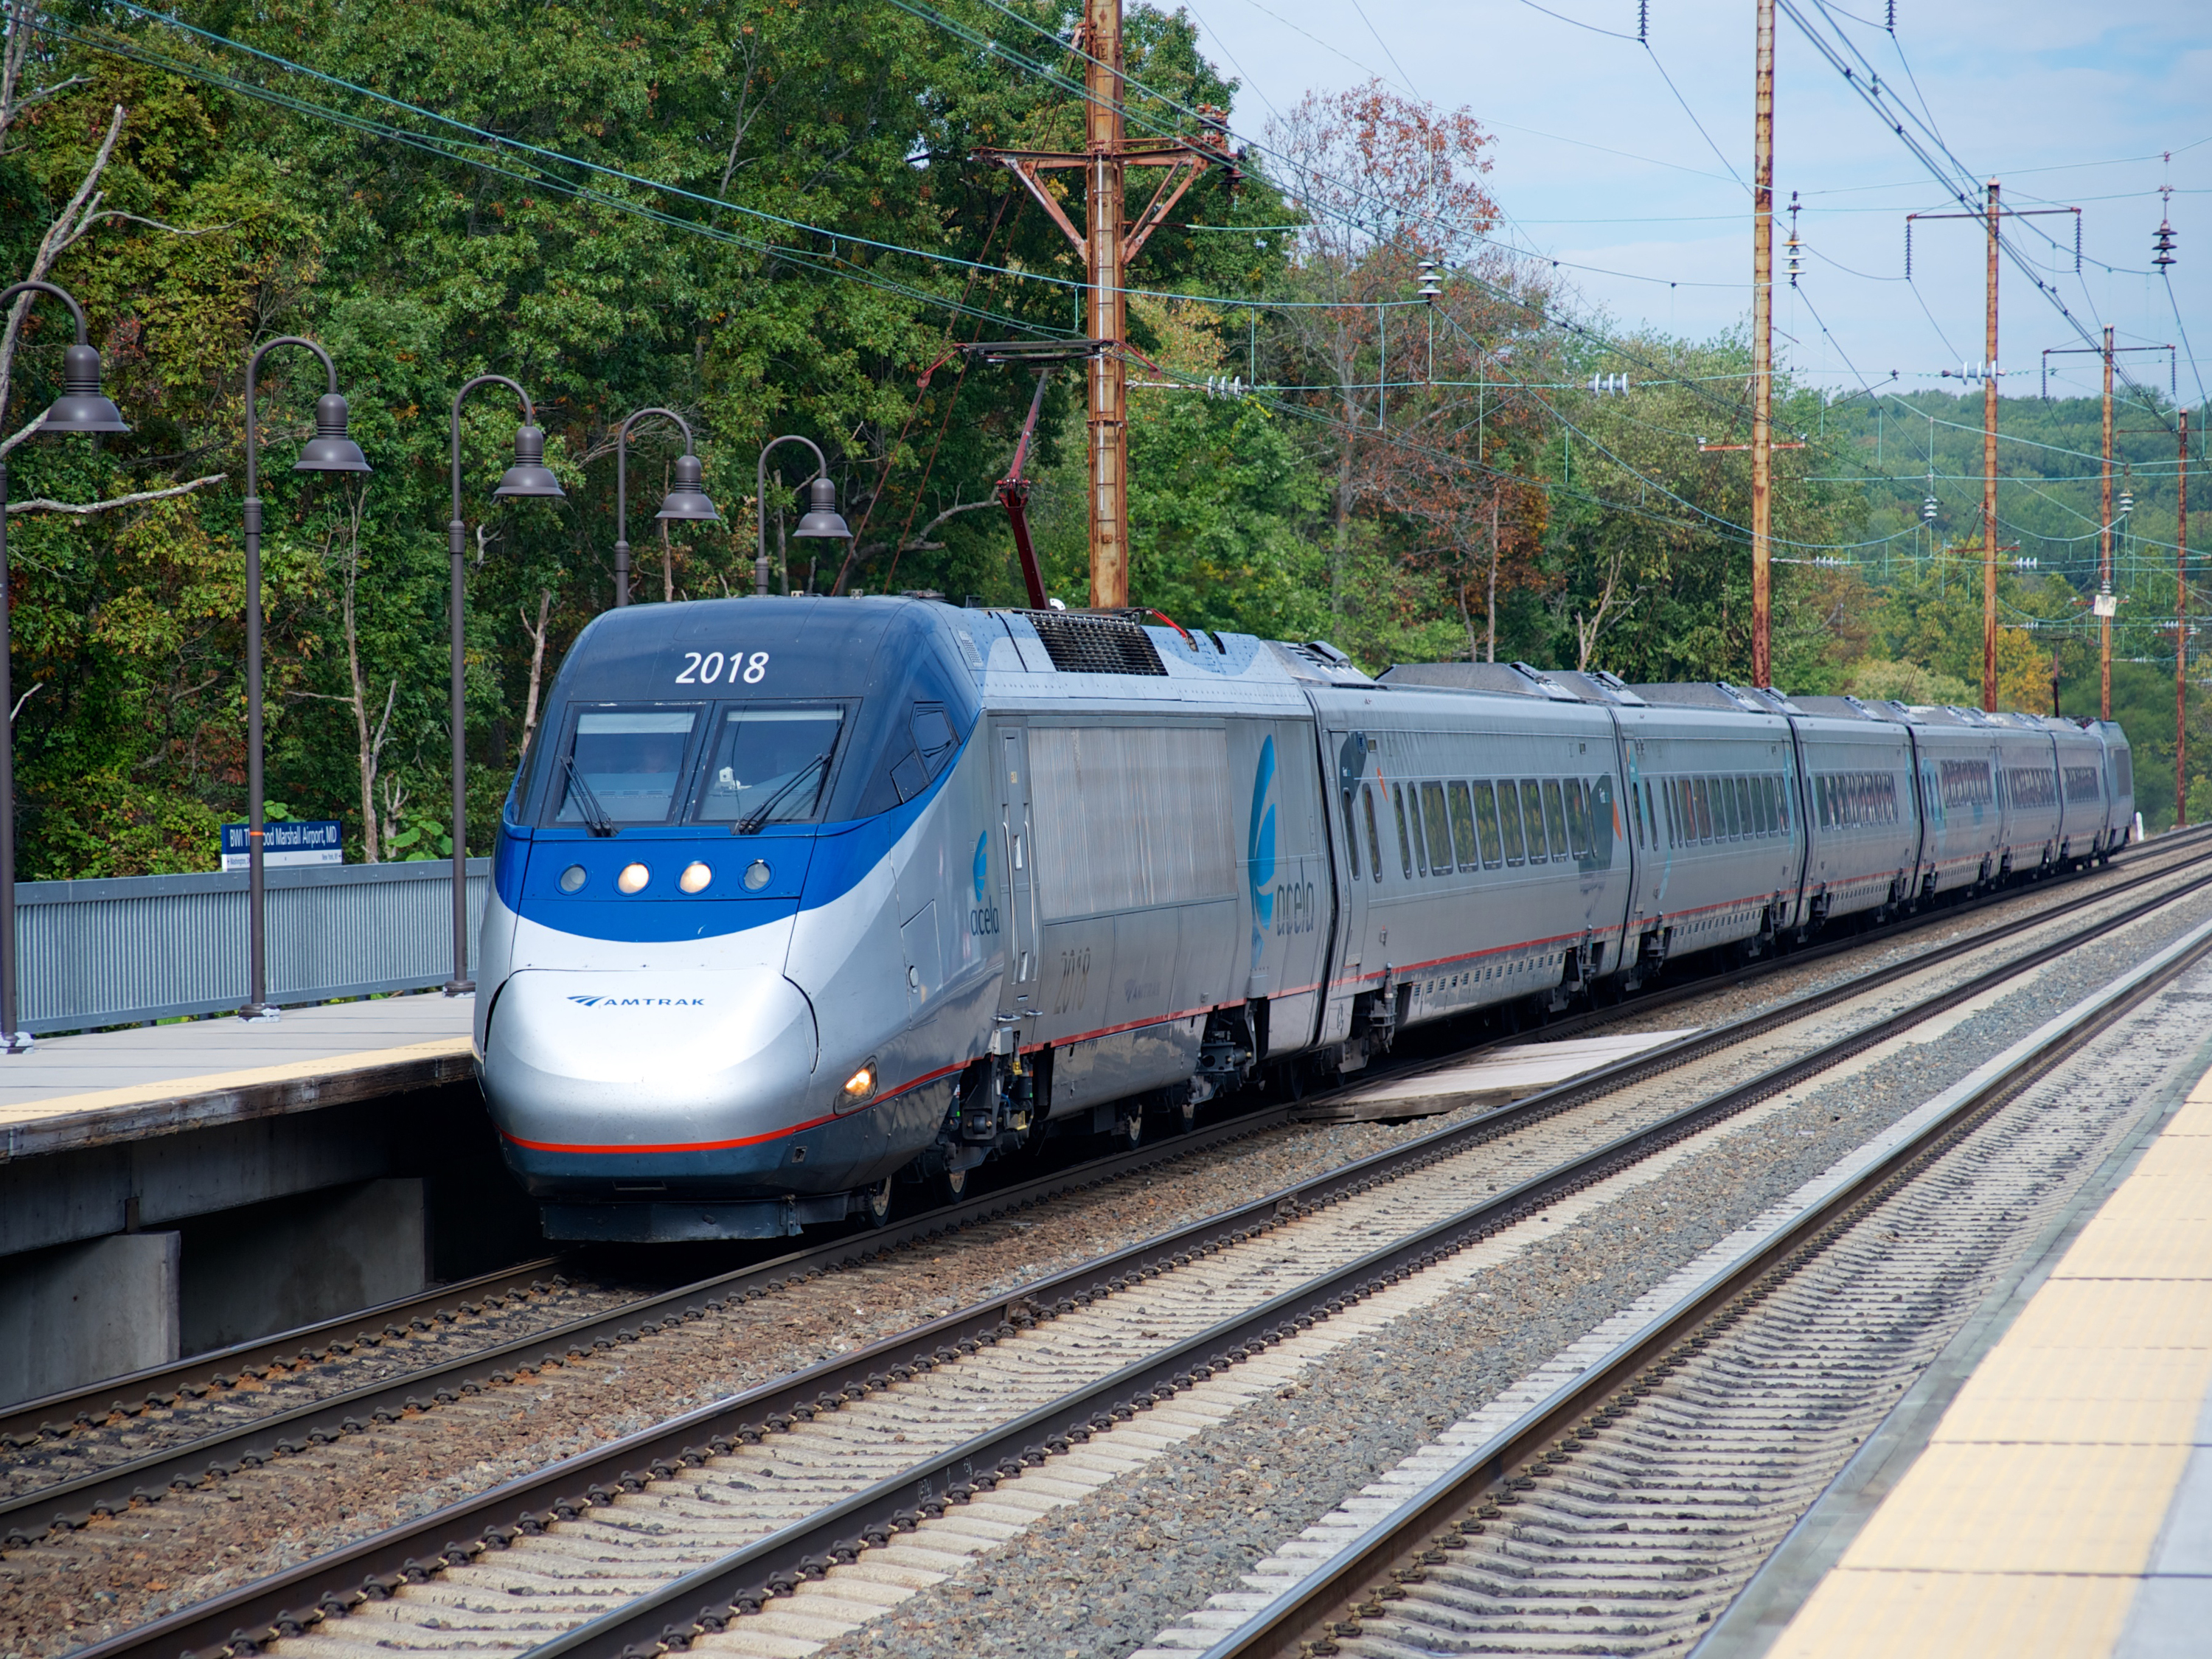 Amtrak will offer non-stop NYC to Washington D.C. service in the fall